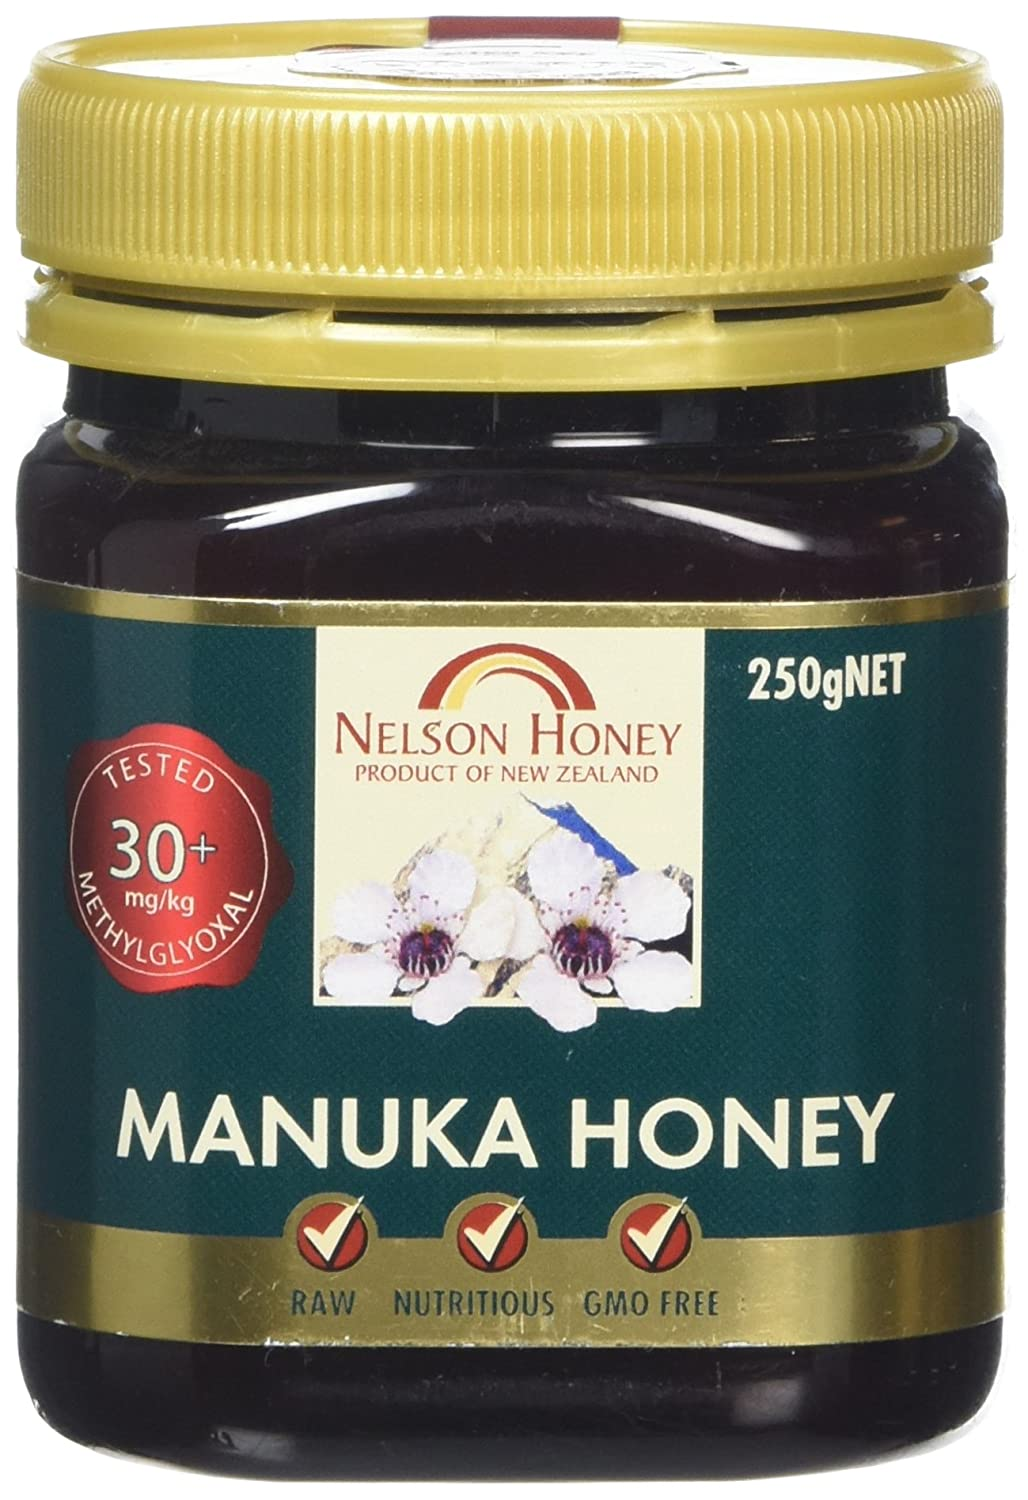 Nelson Honey New Zealand Manuka Honey (30+) 250g